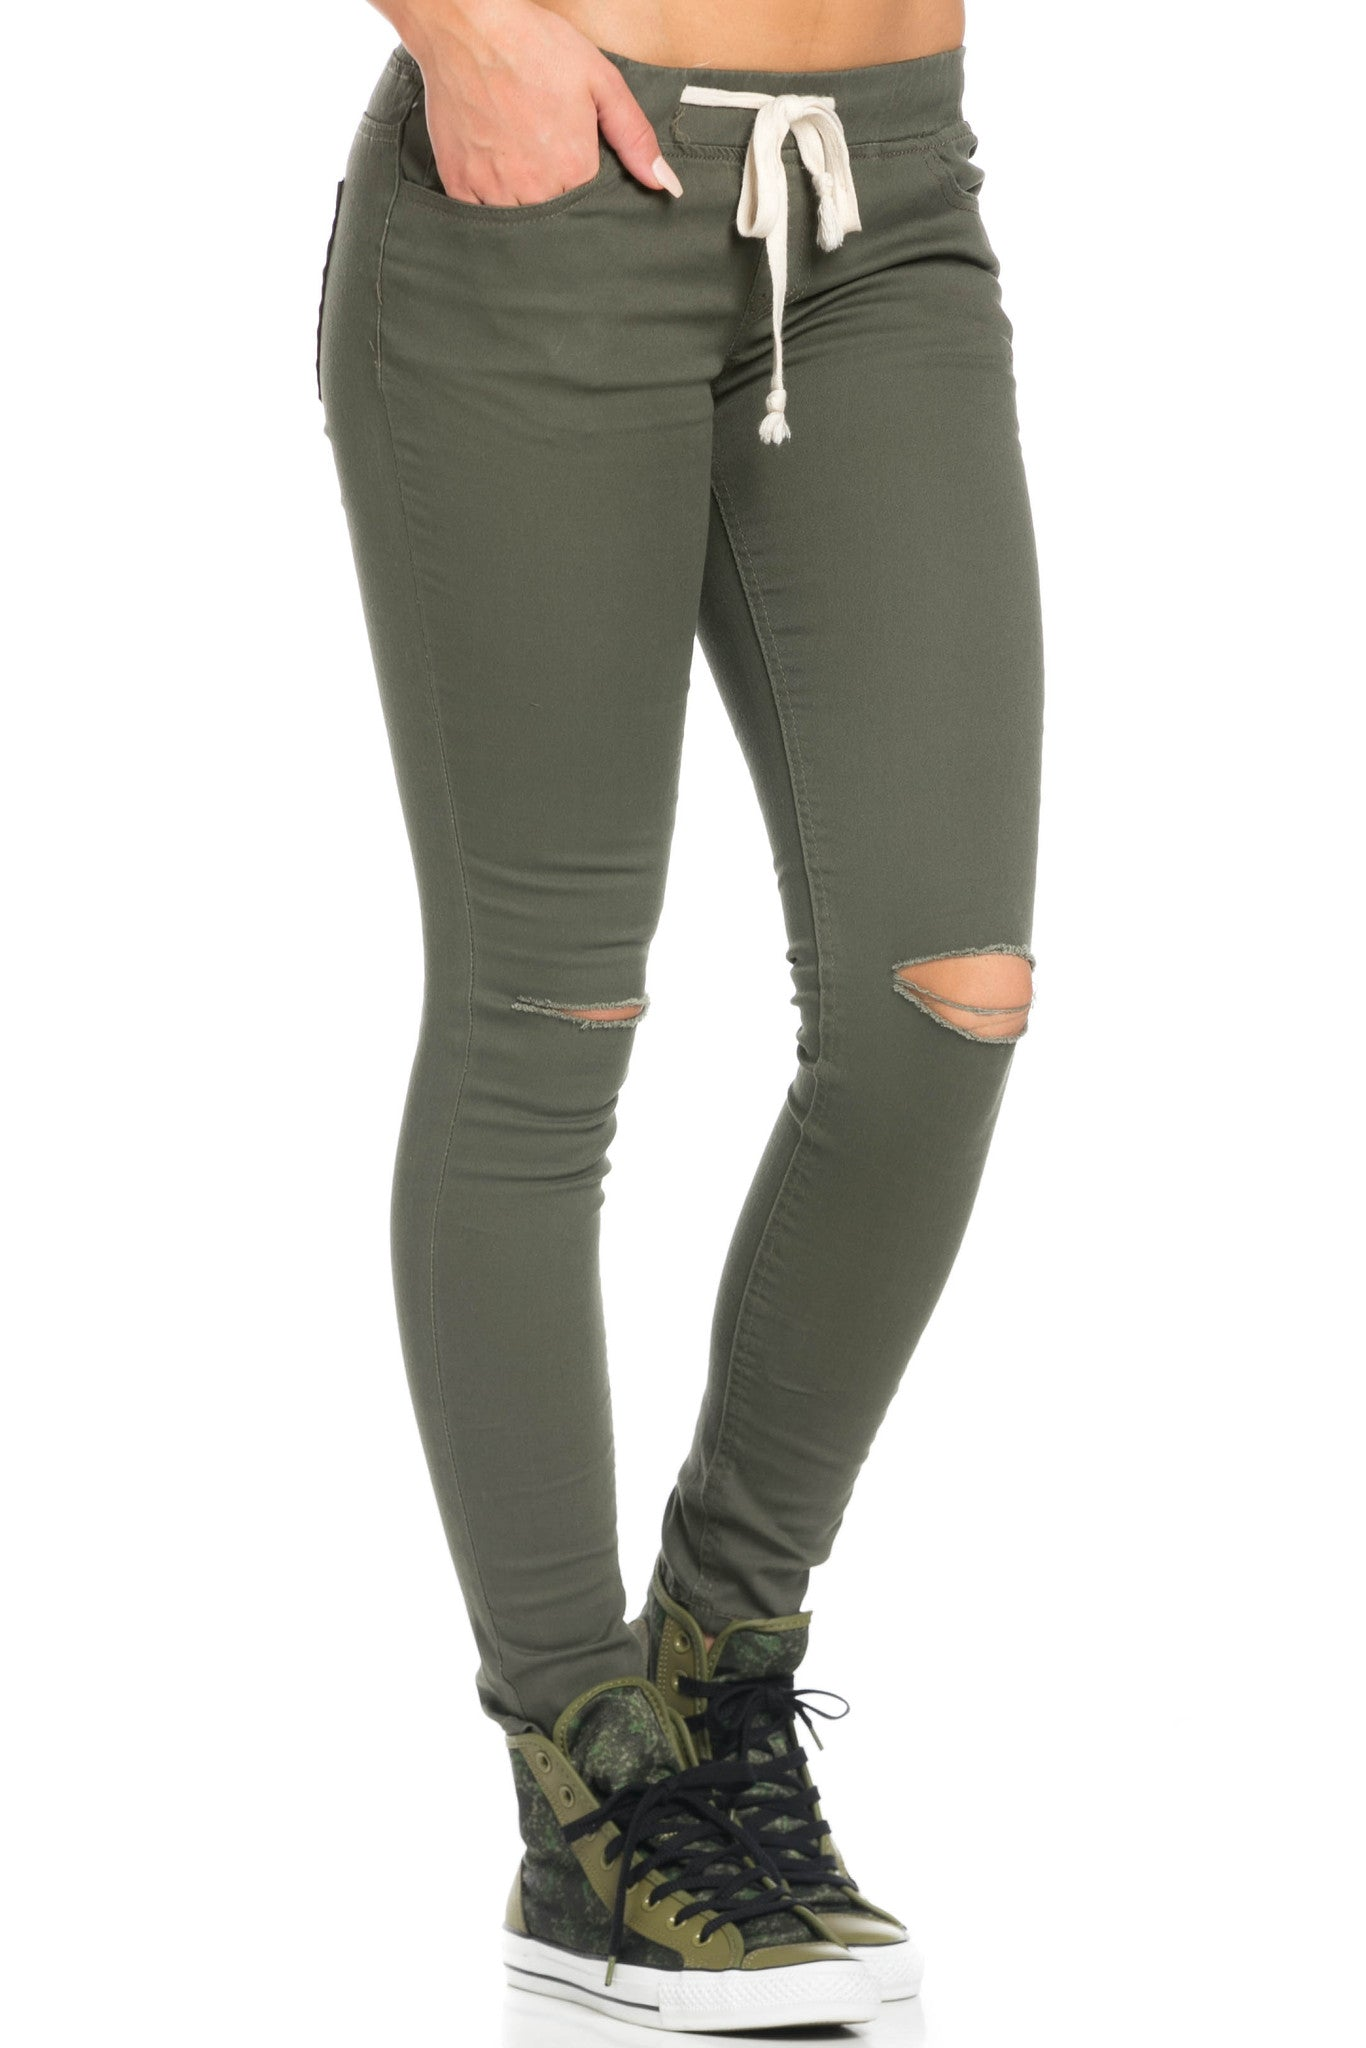 Destroyed Olive Skinny Jogger Jeans - Pants - My Yuccie - 6